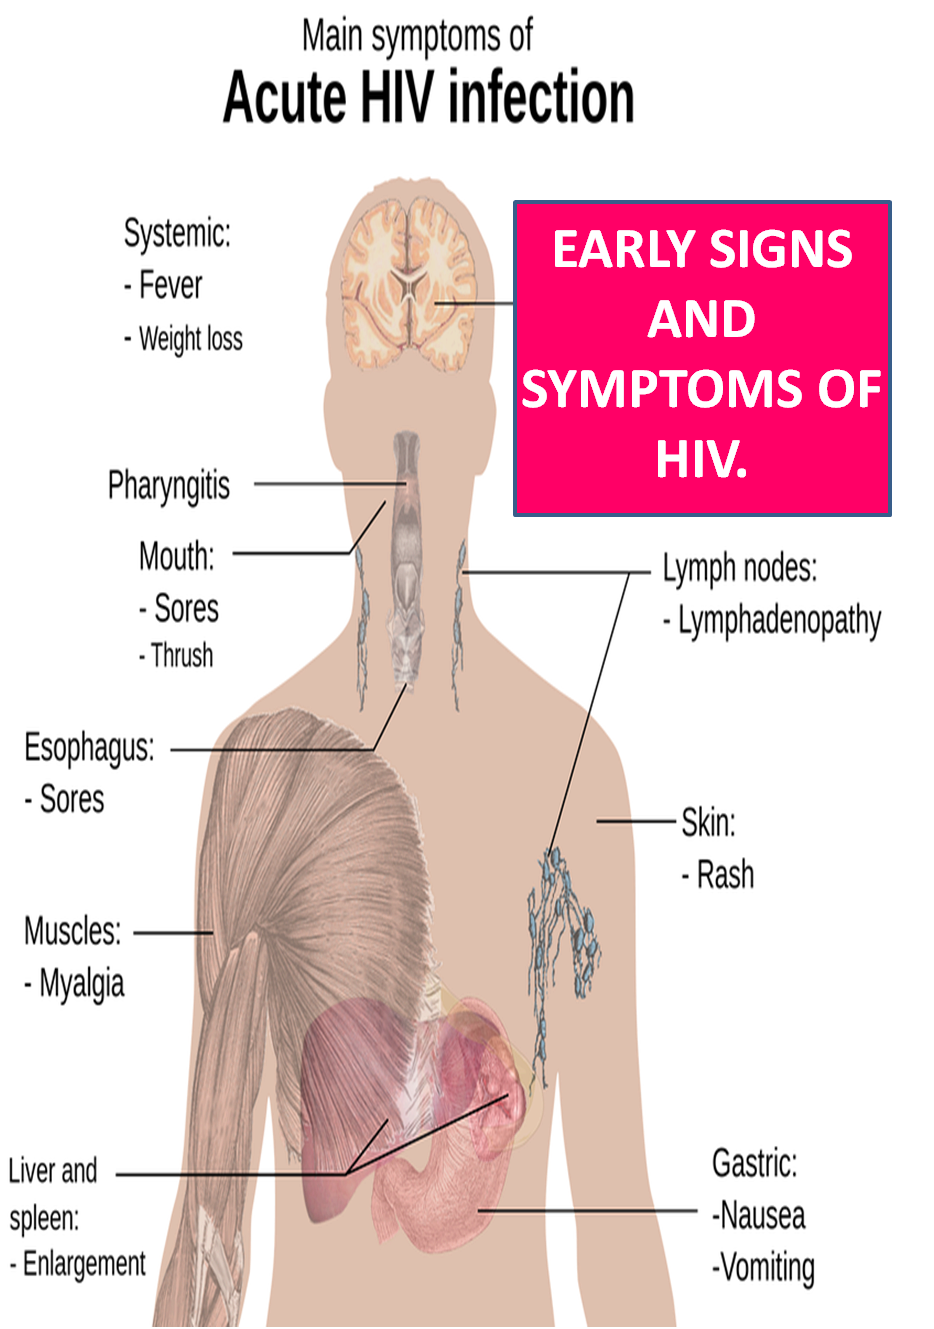 medium resolution of heavy signs and symptoms of hiv in an early stage